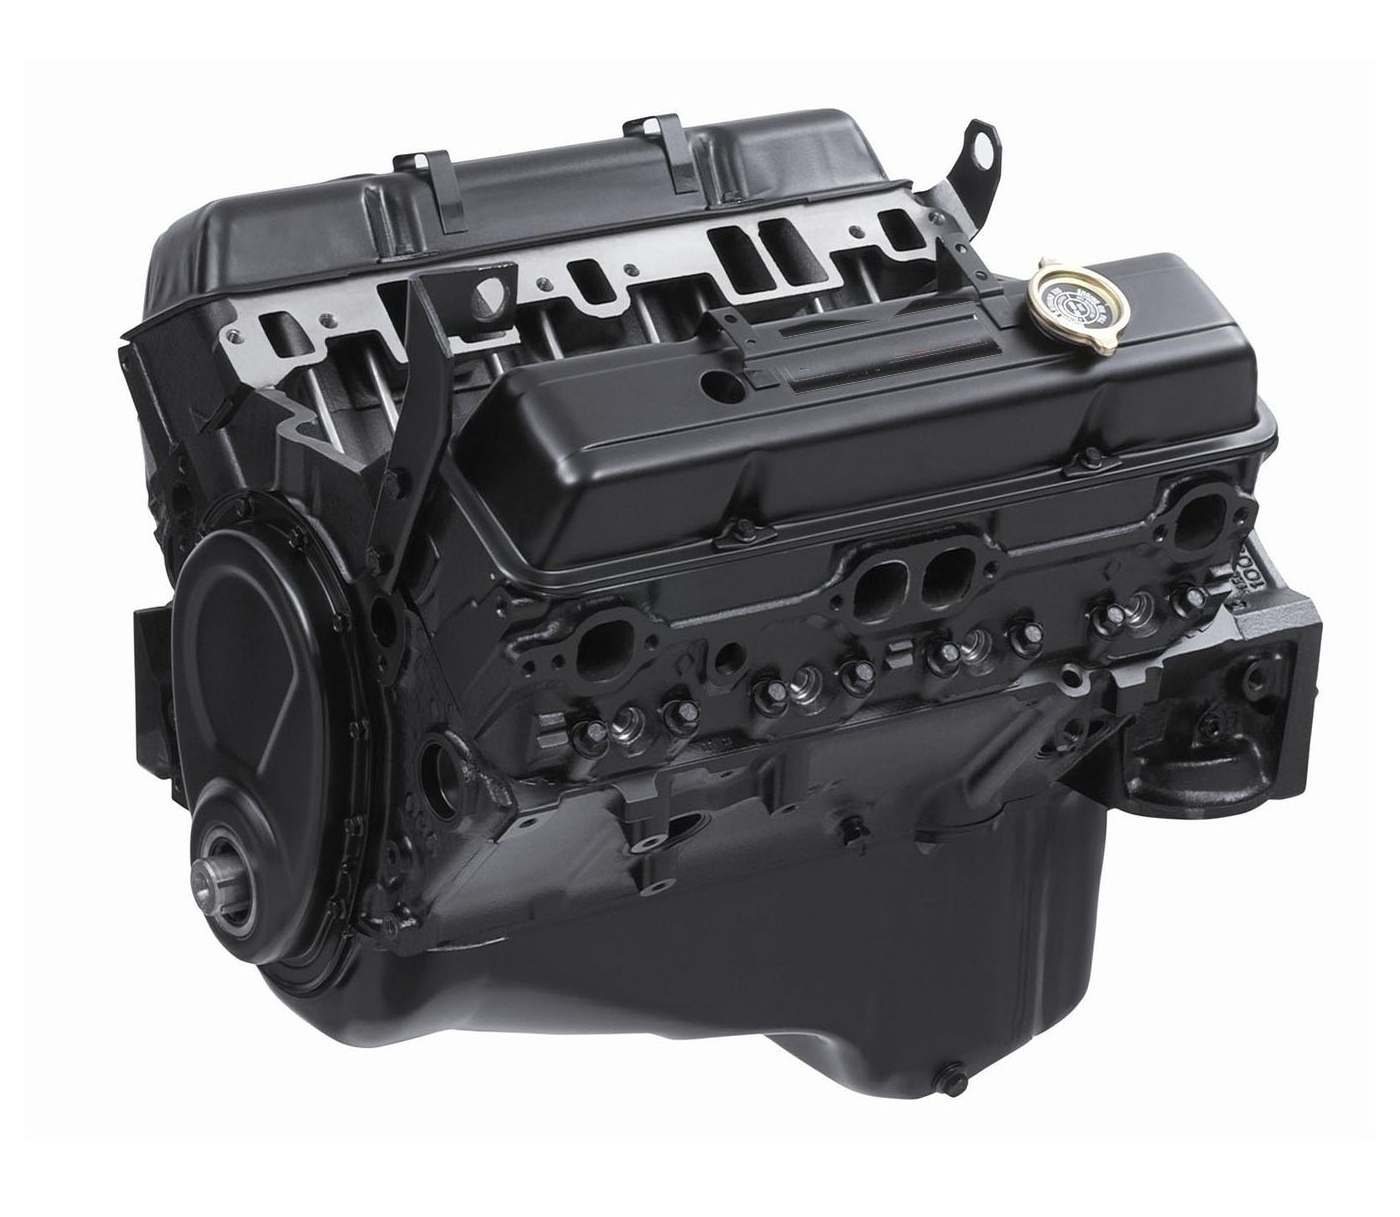 5.7L Reman Long Block Engine For GMC P2500